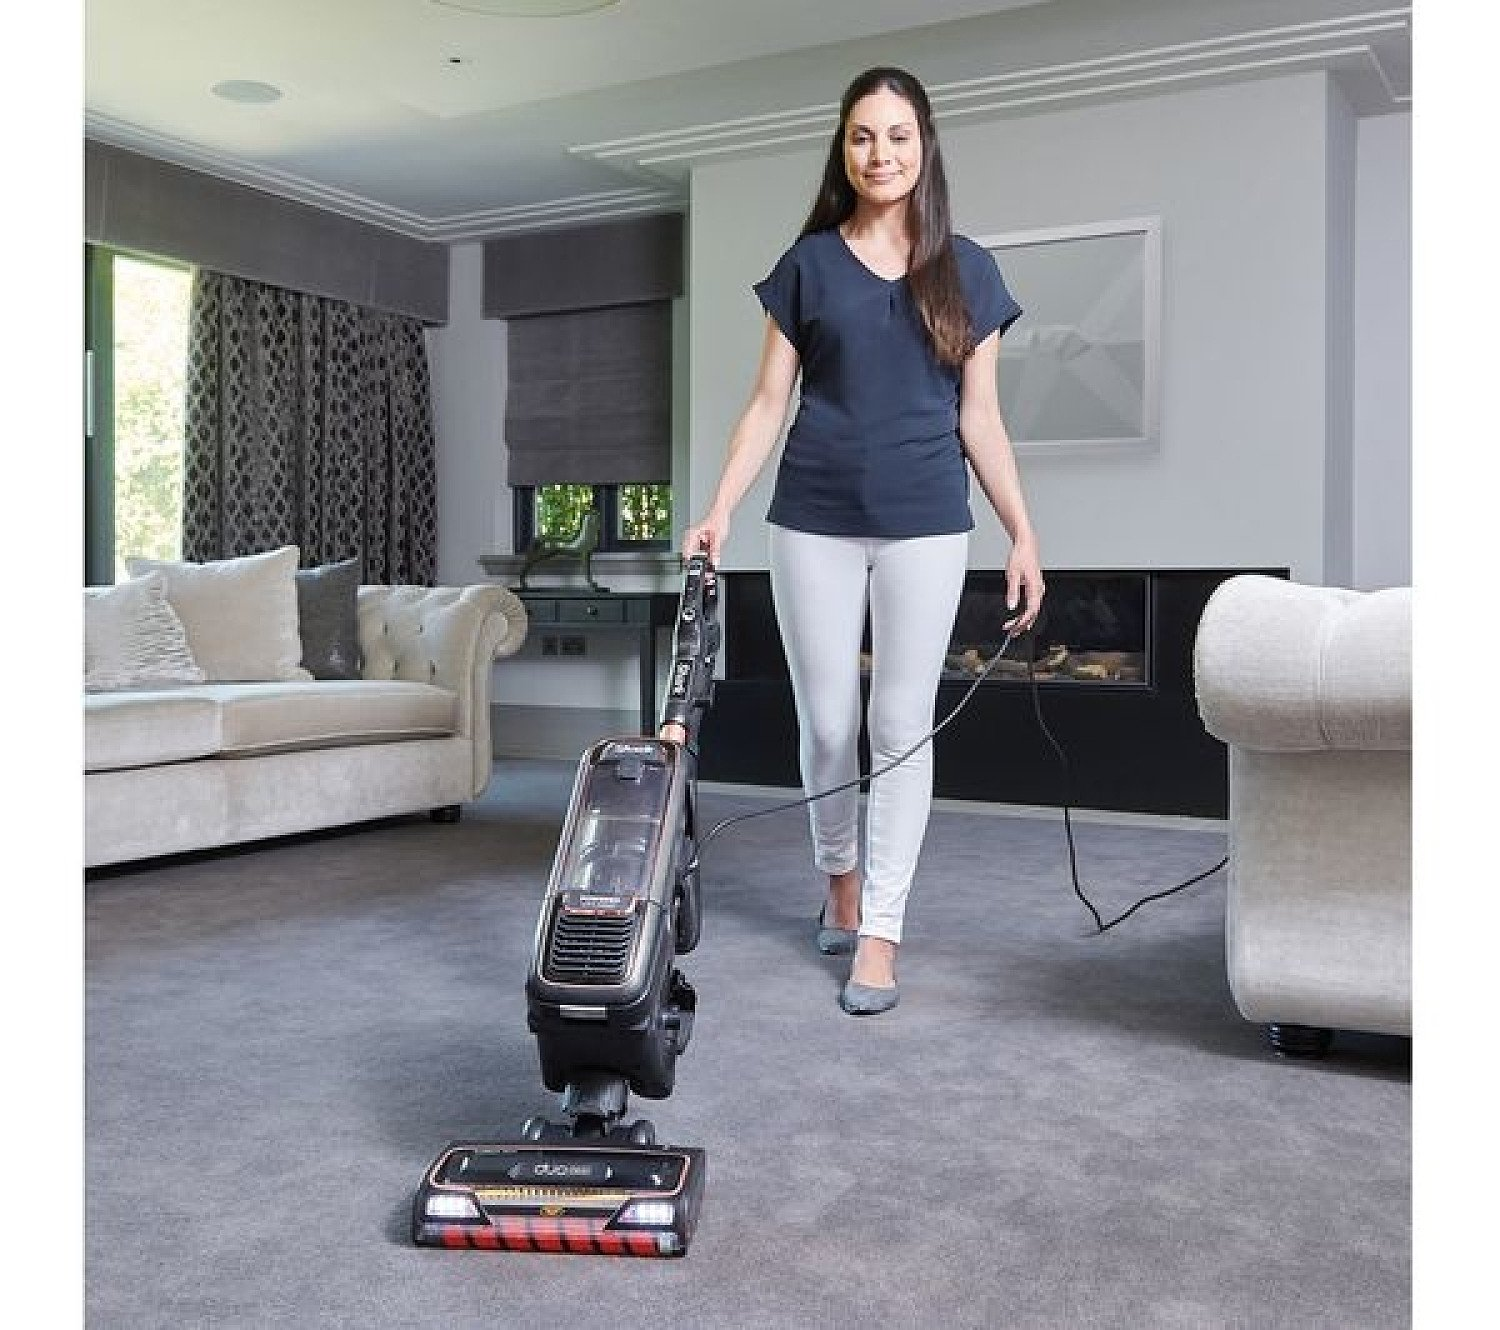 SAVE - Shark Anti Hair Wrap Upright Vacuum Cleaner XL with Powered Lift-Away and TruePet